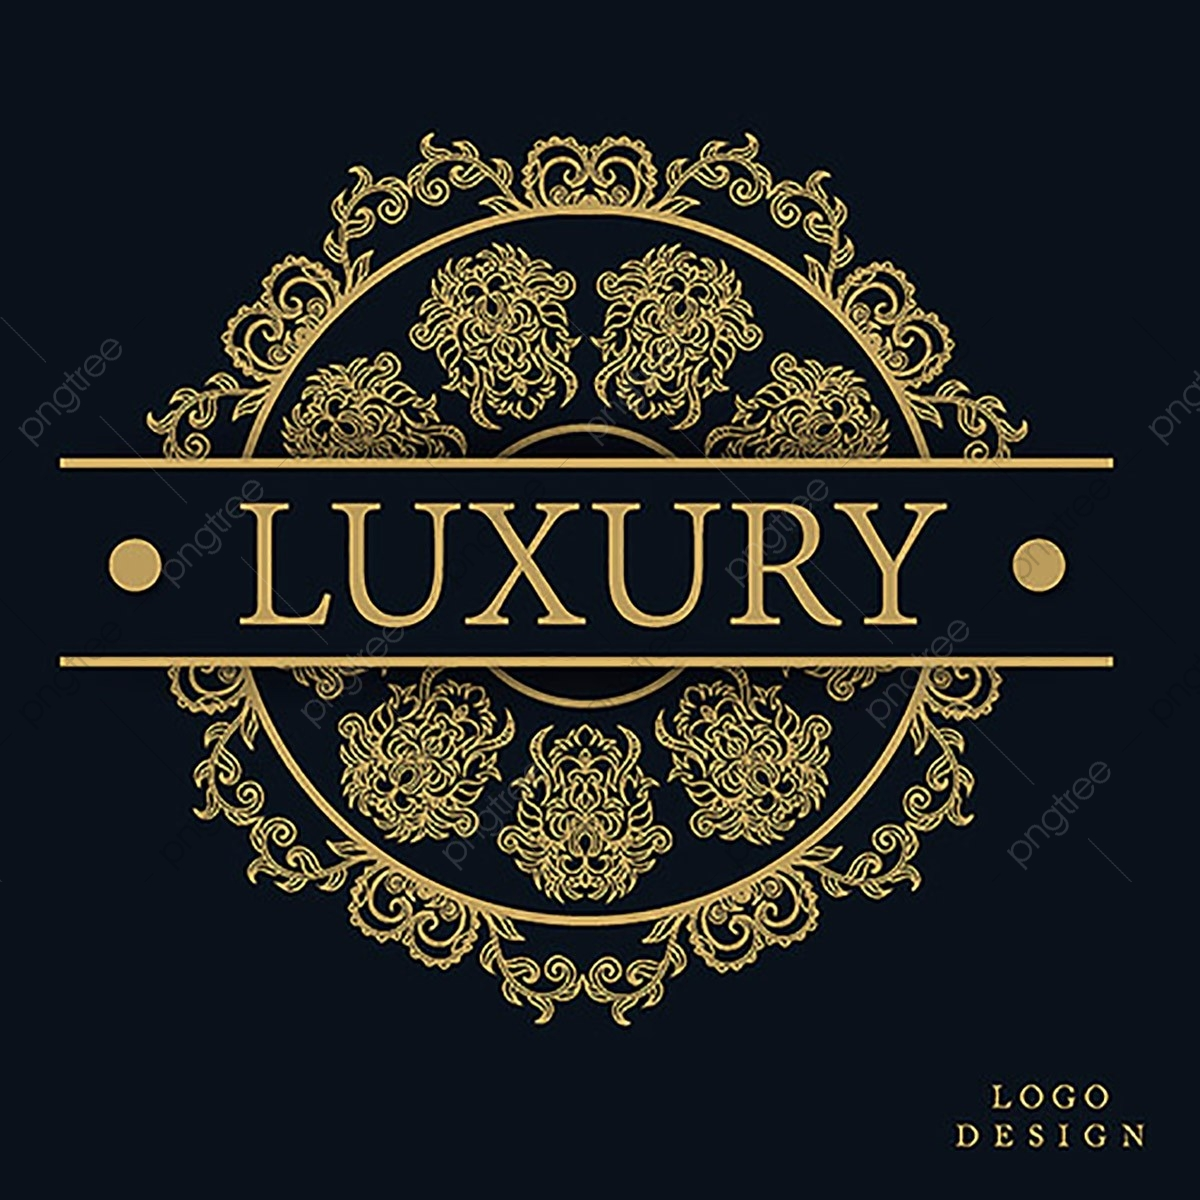 Vector Amazing Luxury Designs, Royal, Crest PNG and Vector.